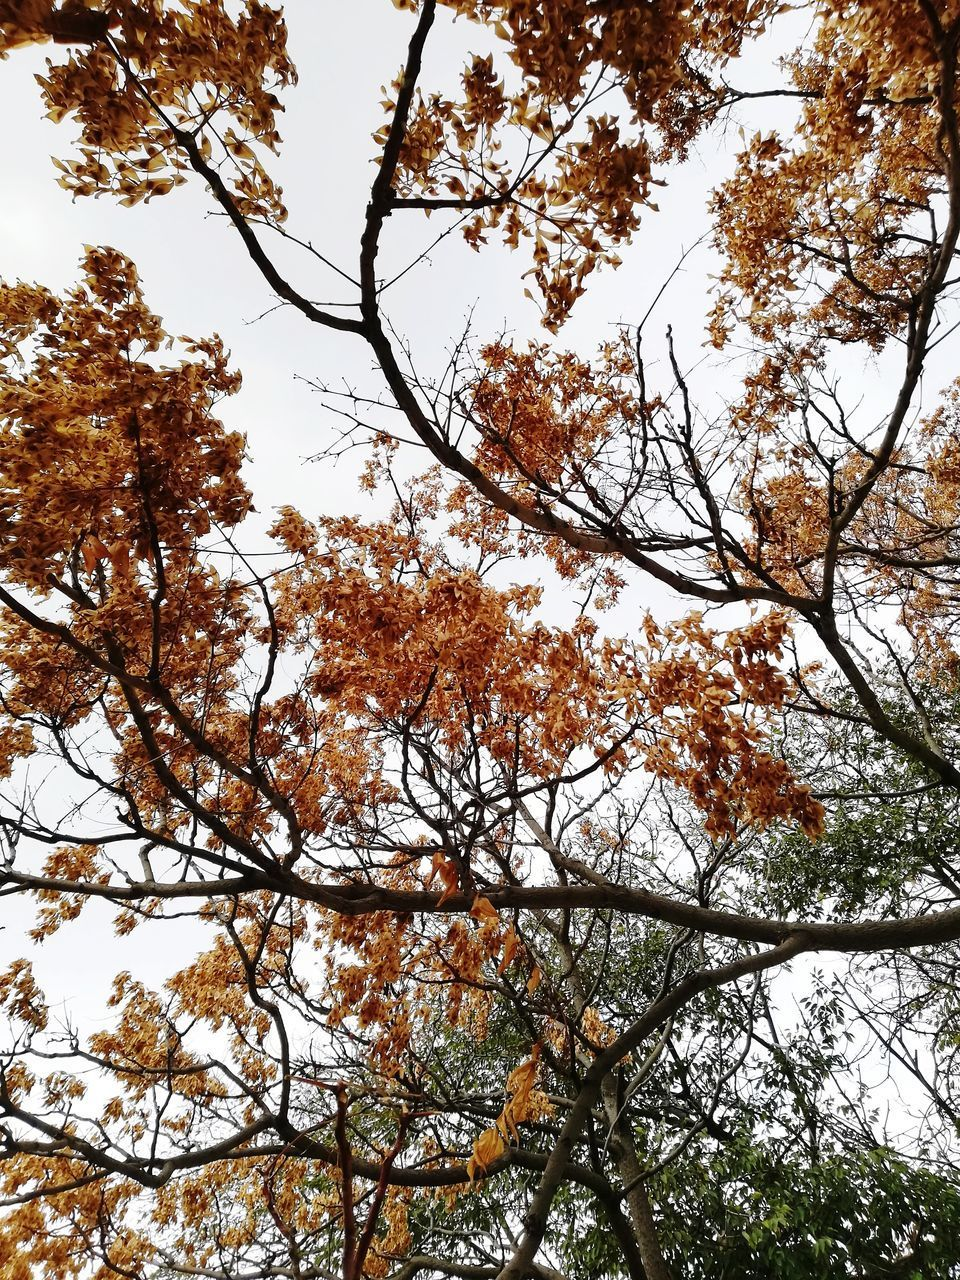 LOW ANGLE VIEW OF FLOWERING TREE AGAINST SKY DURING AUTUMN